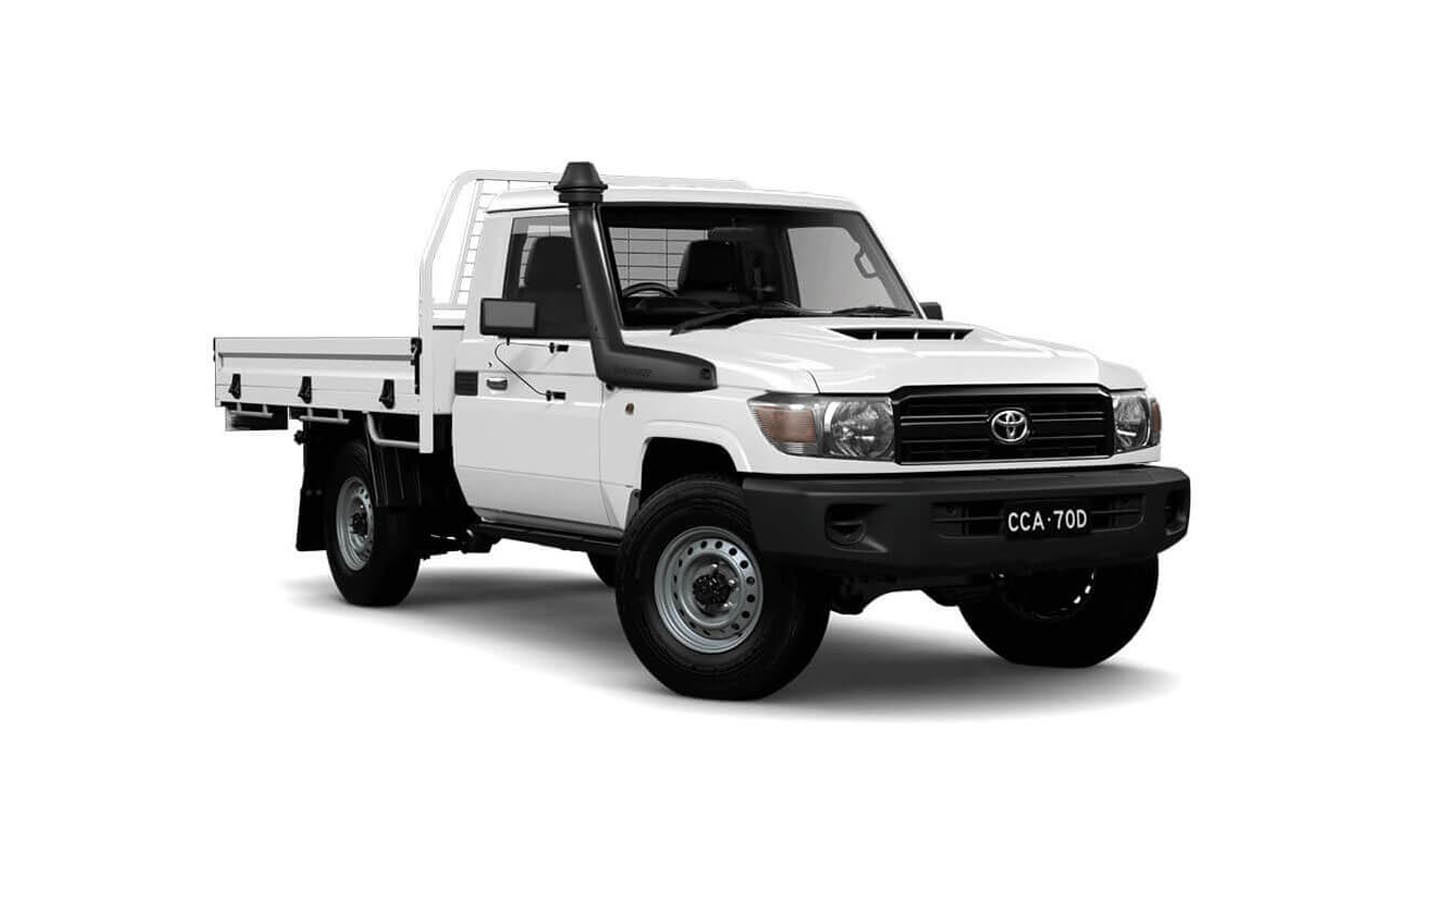 LandCruiser70-Deisgn-05-SINGLE-CAB CAB-CHASSIS